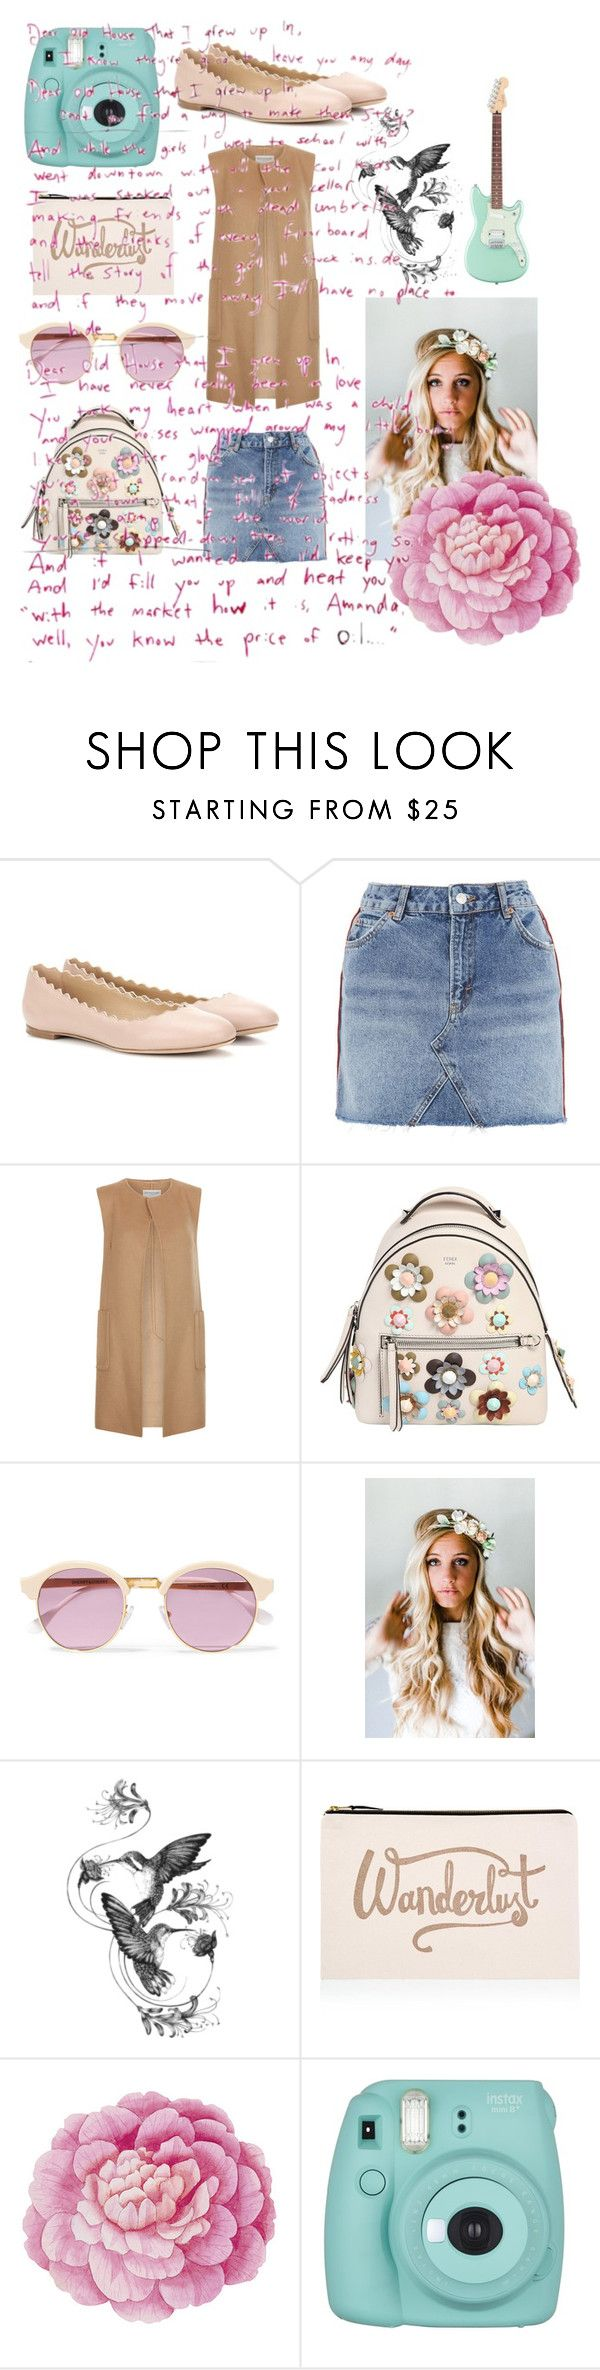 """""""Wanderer"""" by princesscadence7 ❤ liked on Polyvore featuring Chloé, Topshop, Monsoon, Fendi, Sheriff&Cherry, Emily Rose Flower Crowns, Emily Carter, ALPHABET BAGS, Ballard Designs and Fujifilm"""